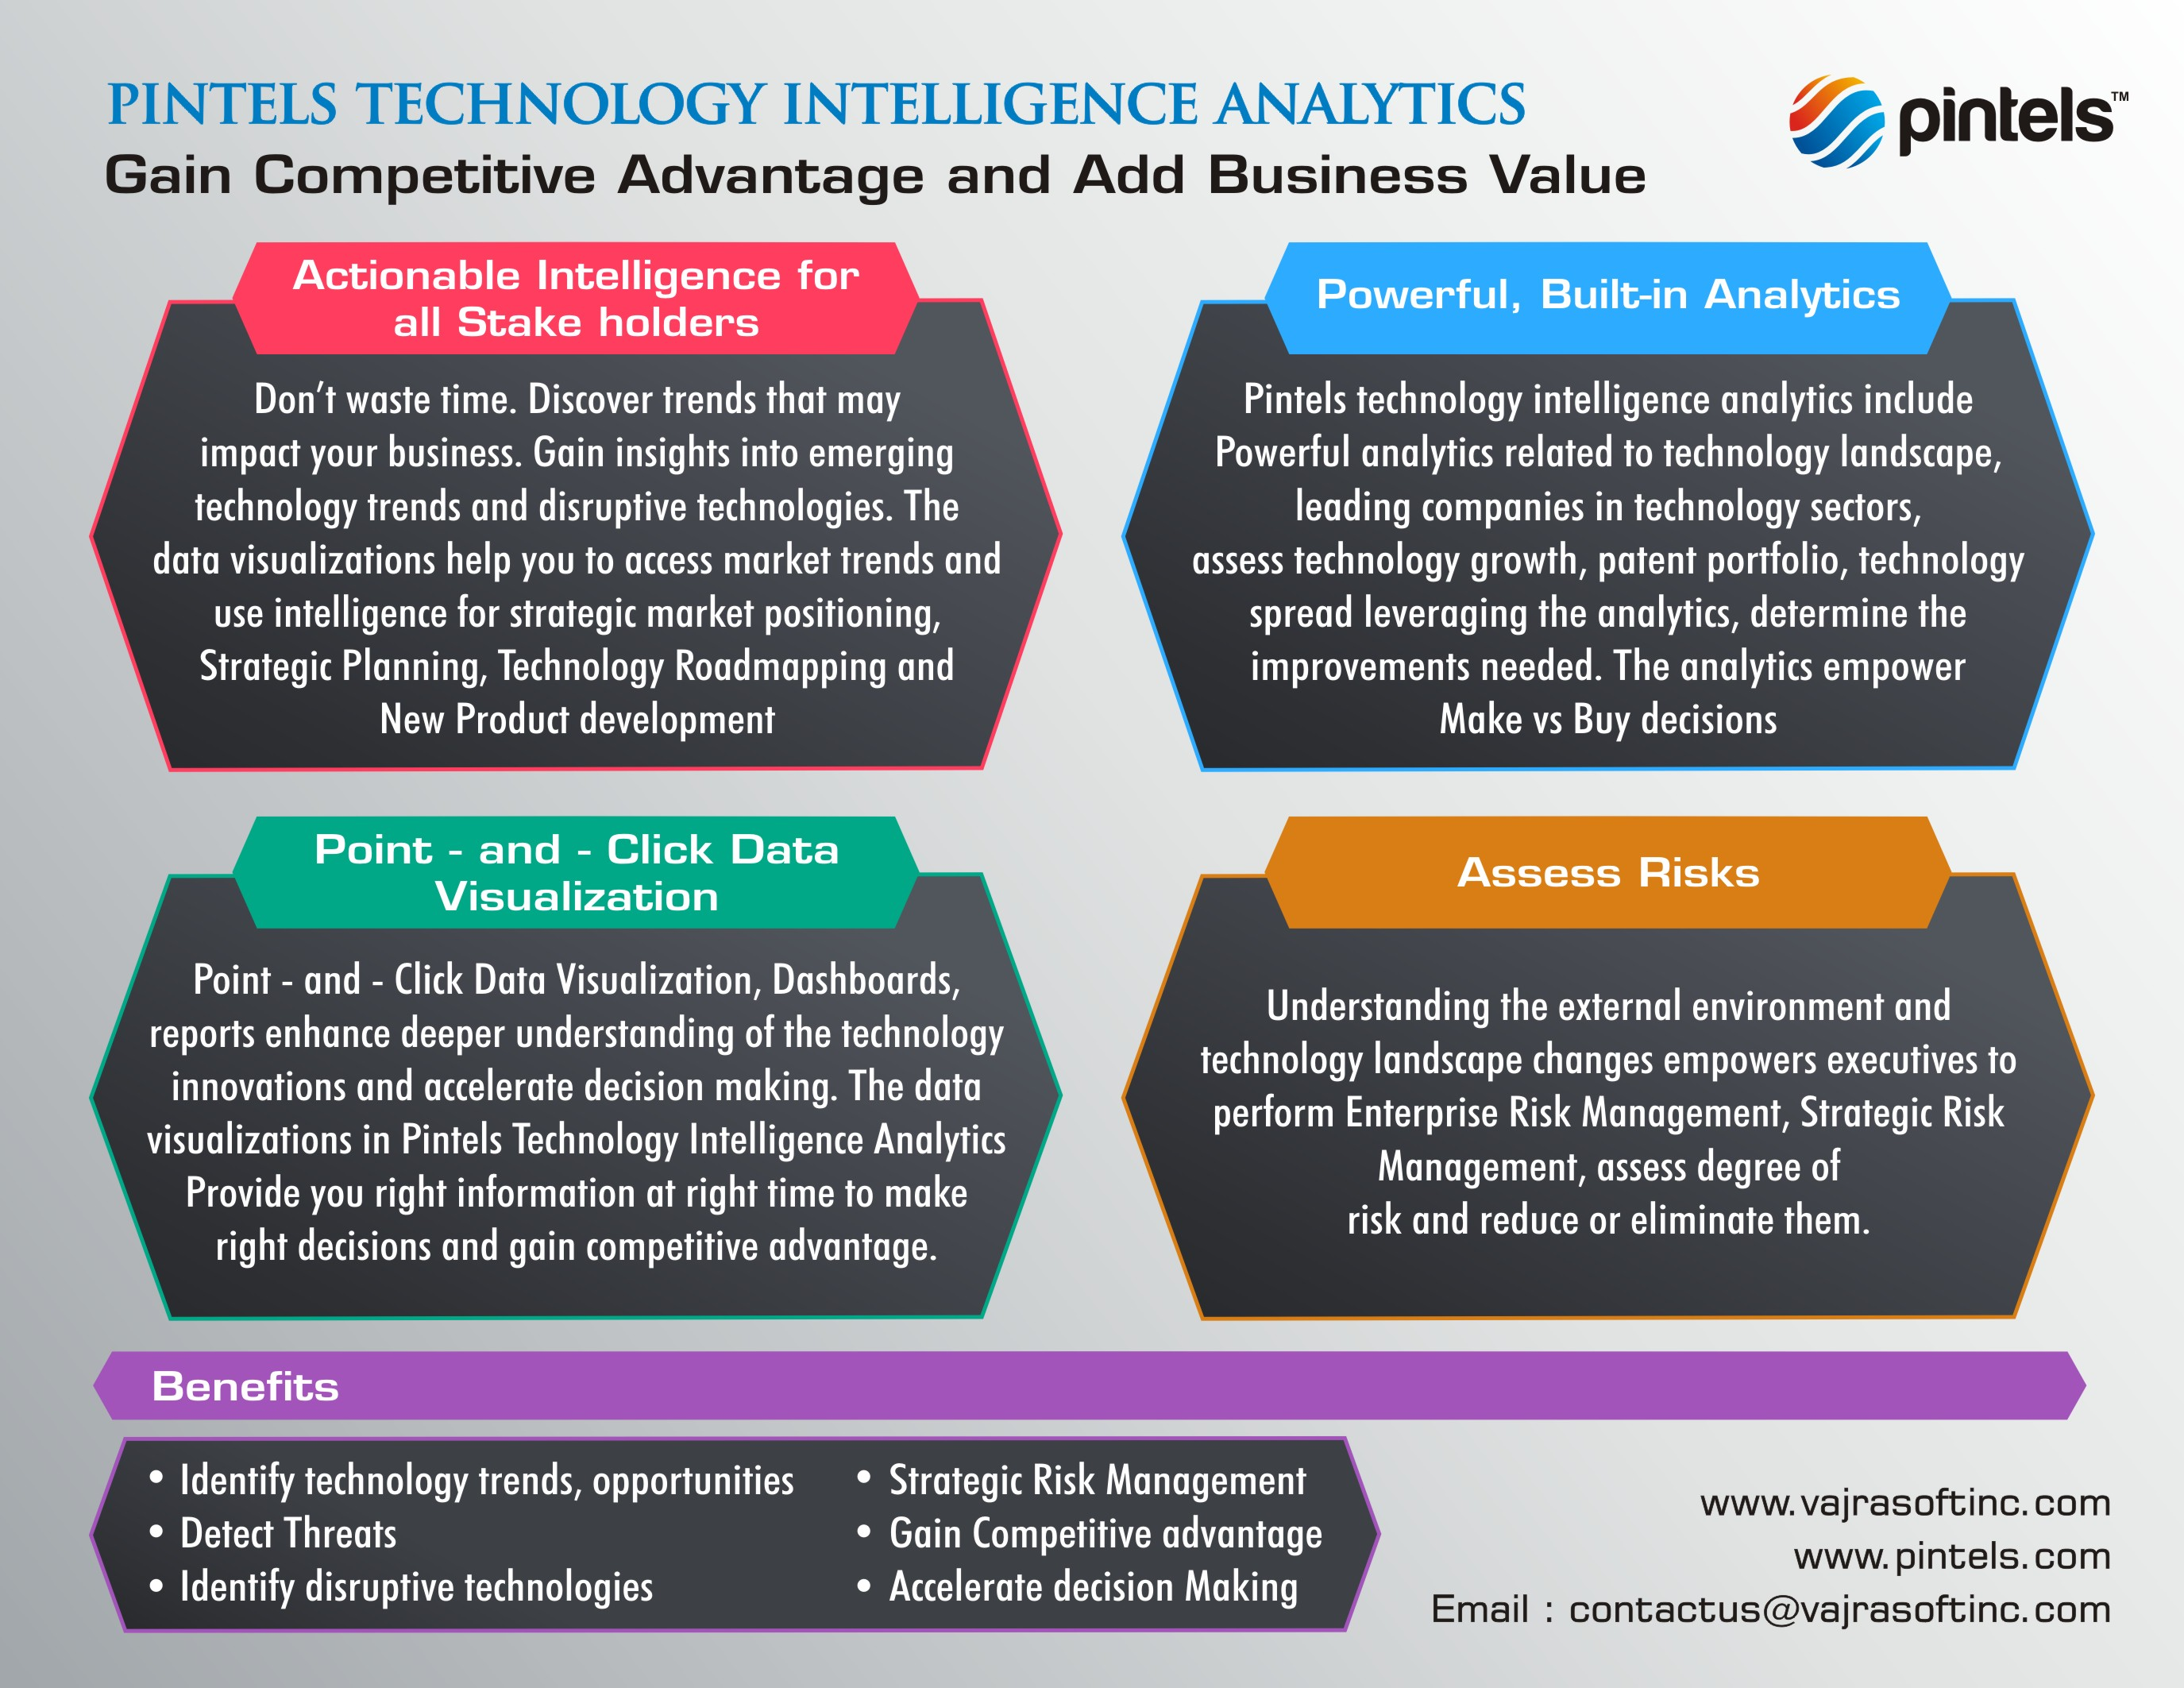 Pintels Technology Intelligence Analytics